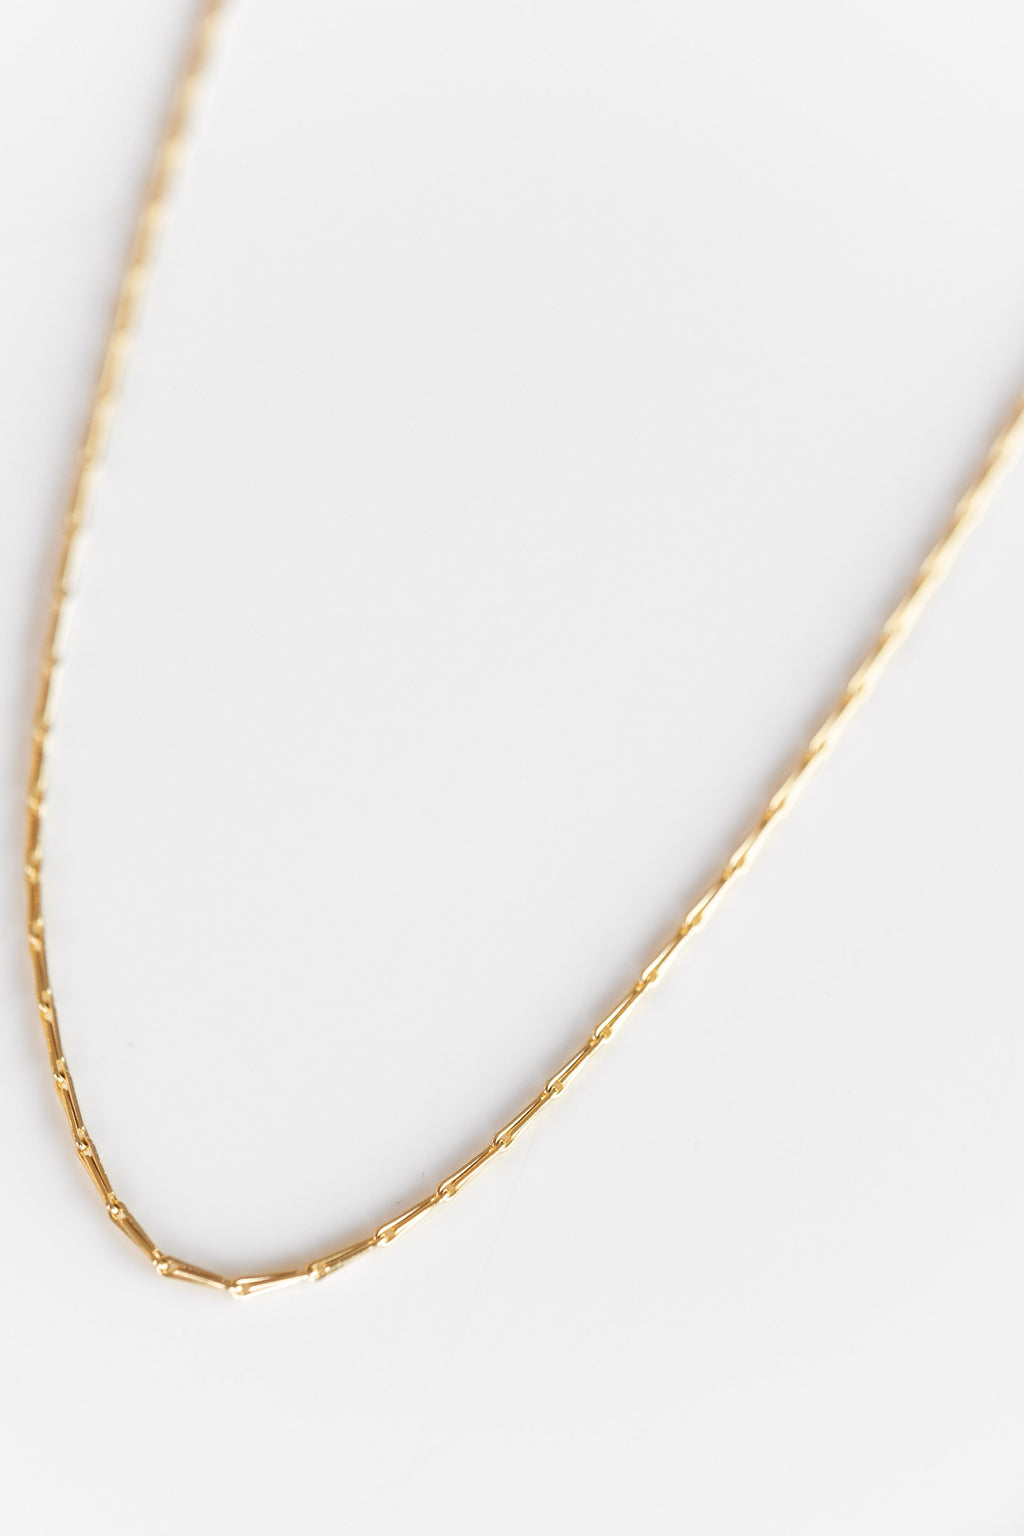 14K LINK CHAIN